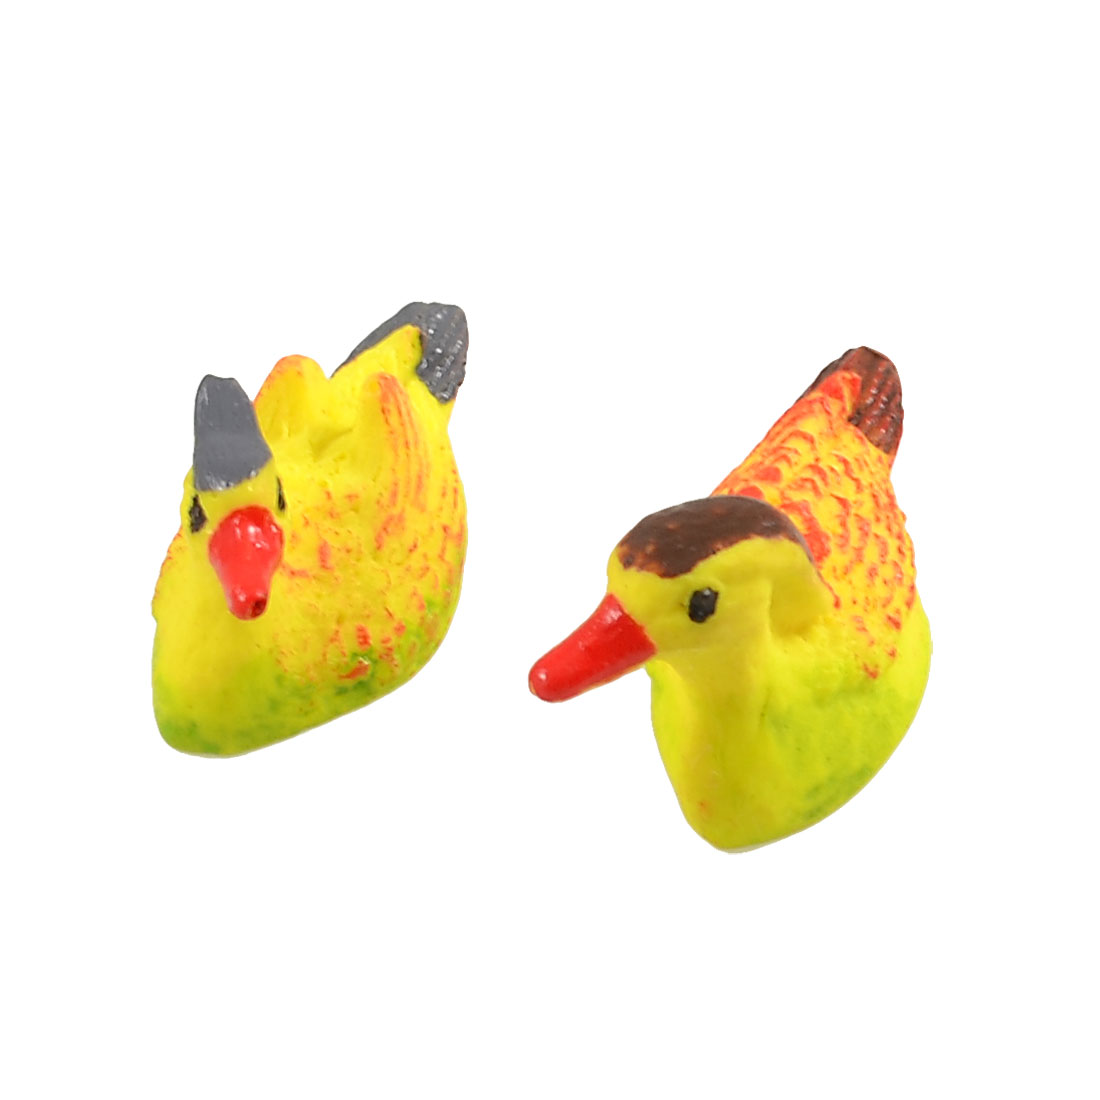 Fish Tank Decoration Yellow Ceramic Mandarin Ducks Toy Pair